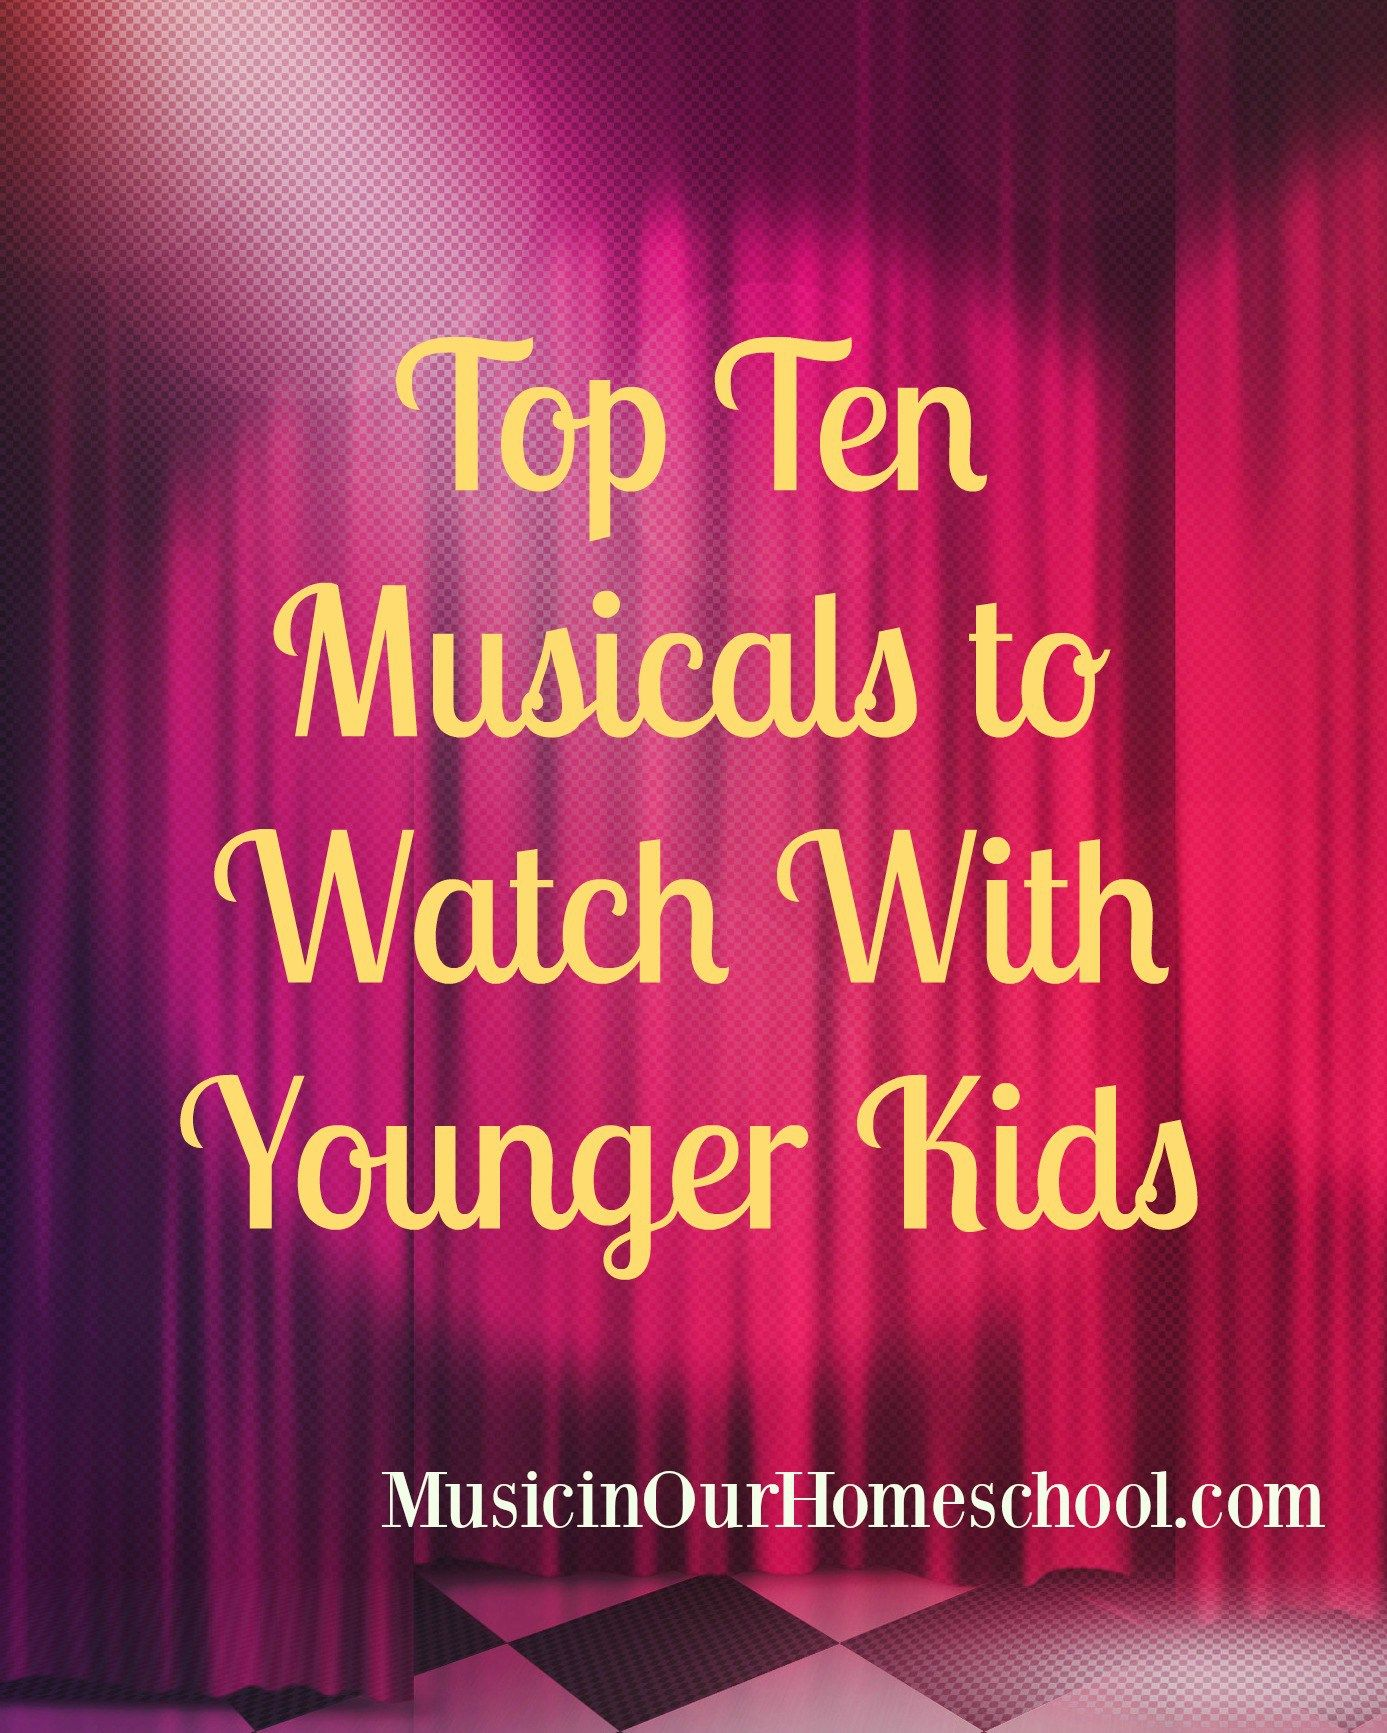 Top 10 Musicals To Watch With Younger Kids Music In Our Homeschool Music Lessons For Kids Music For Kids Music Curriculum